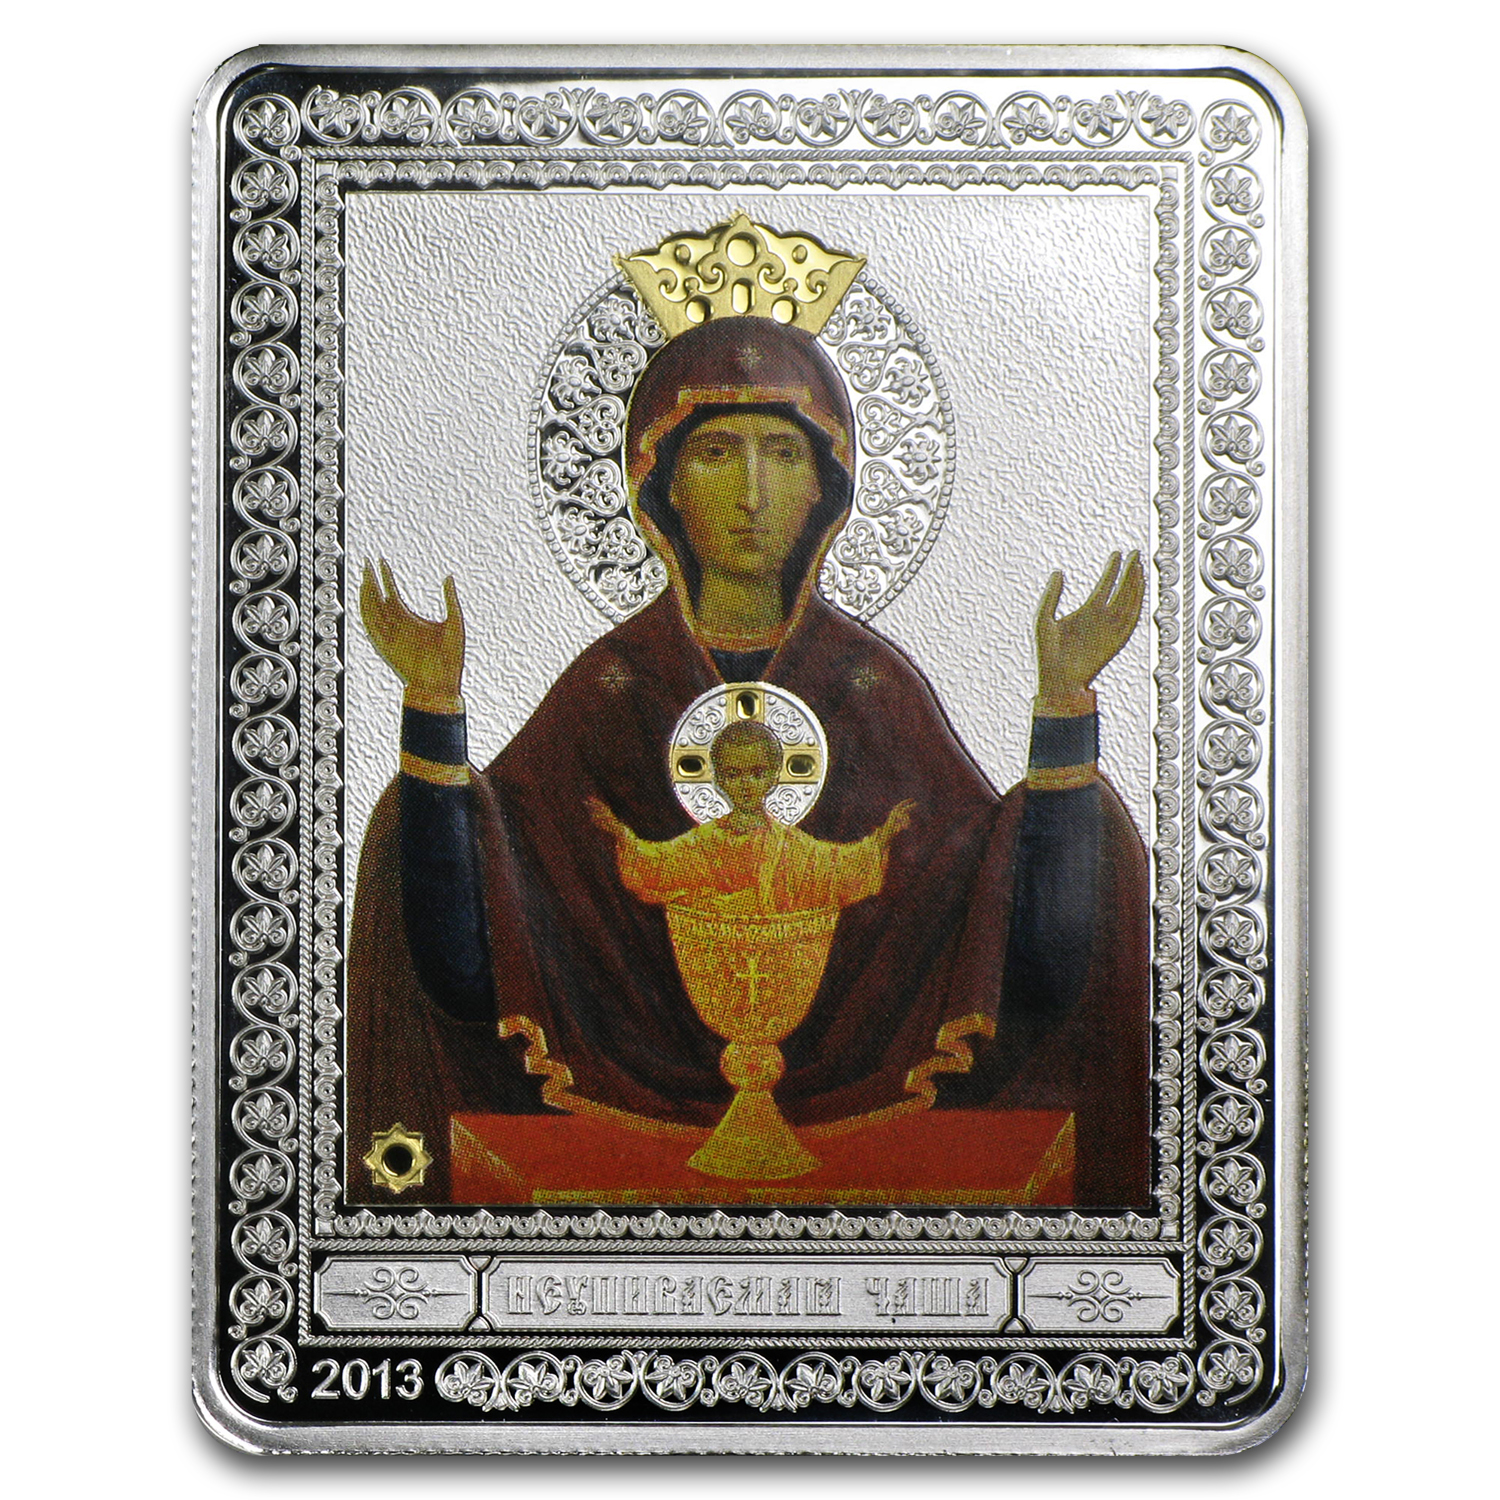 2013 Cook Islands $5 Russian Icon Saint Neupivaemaya Chalice